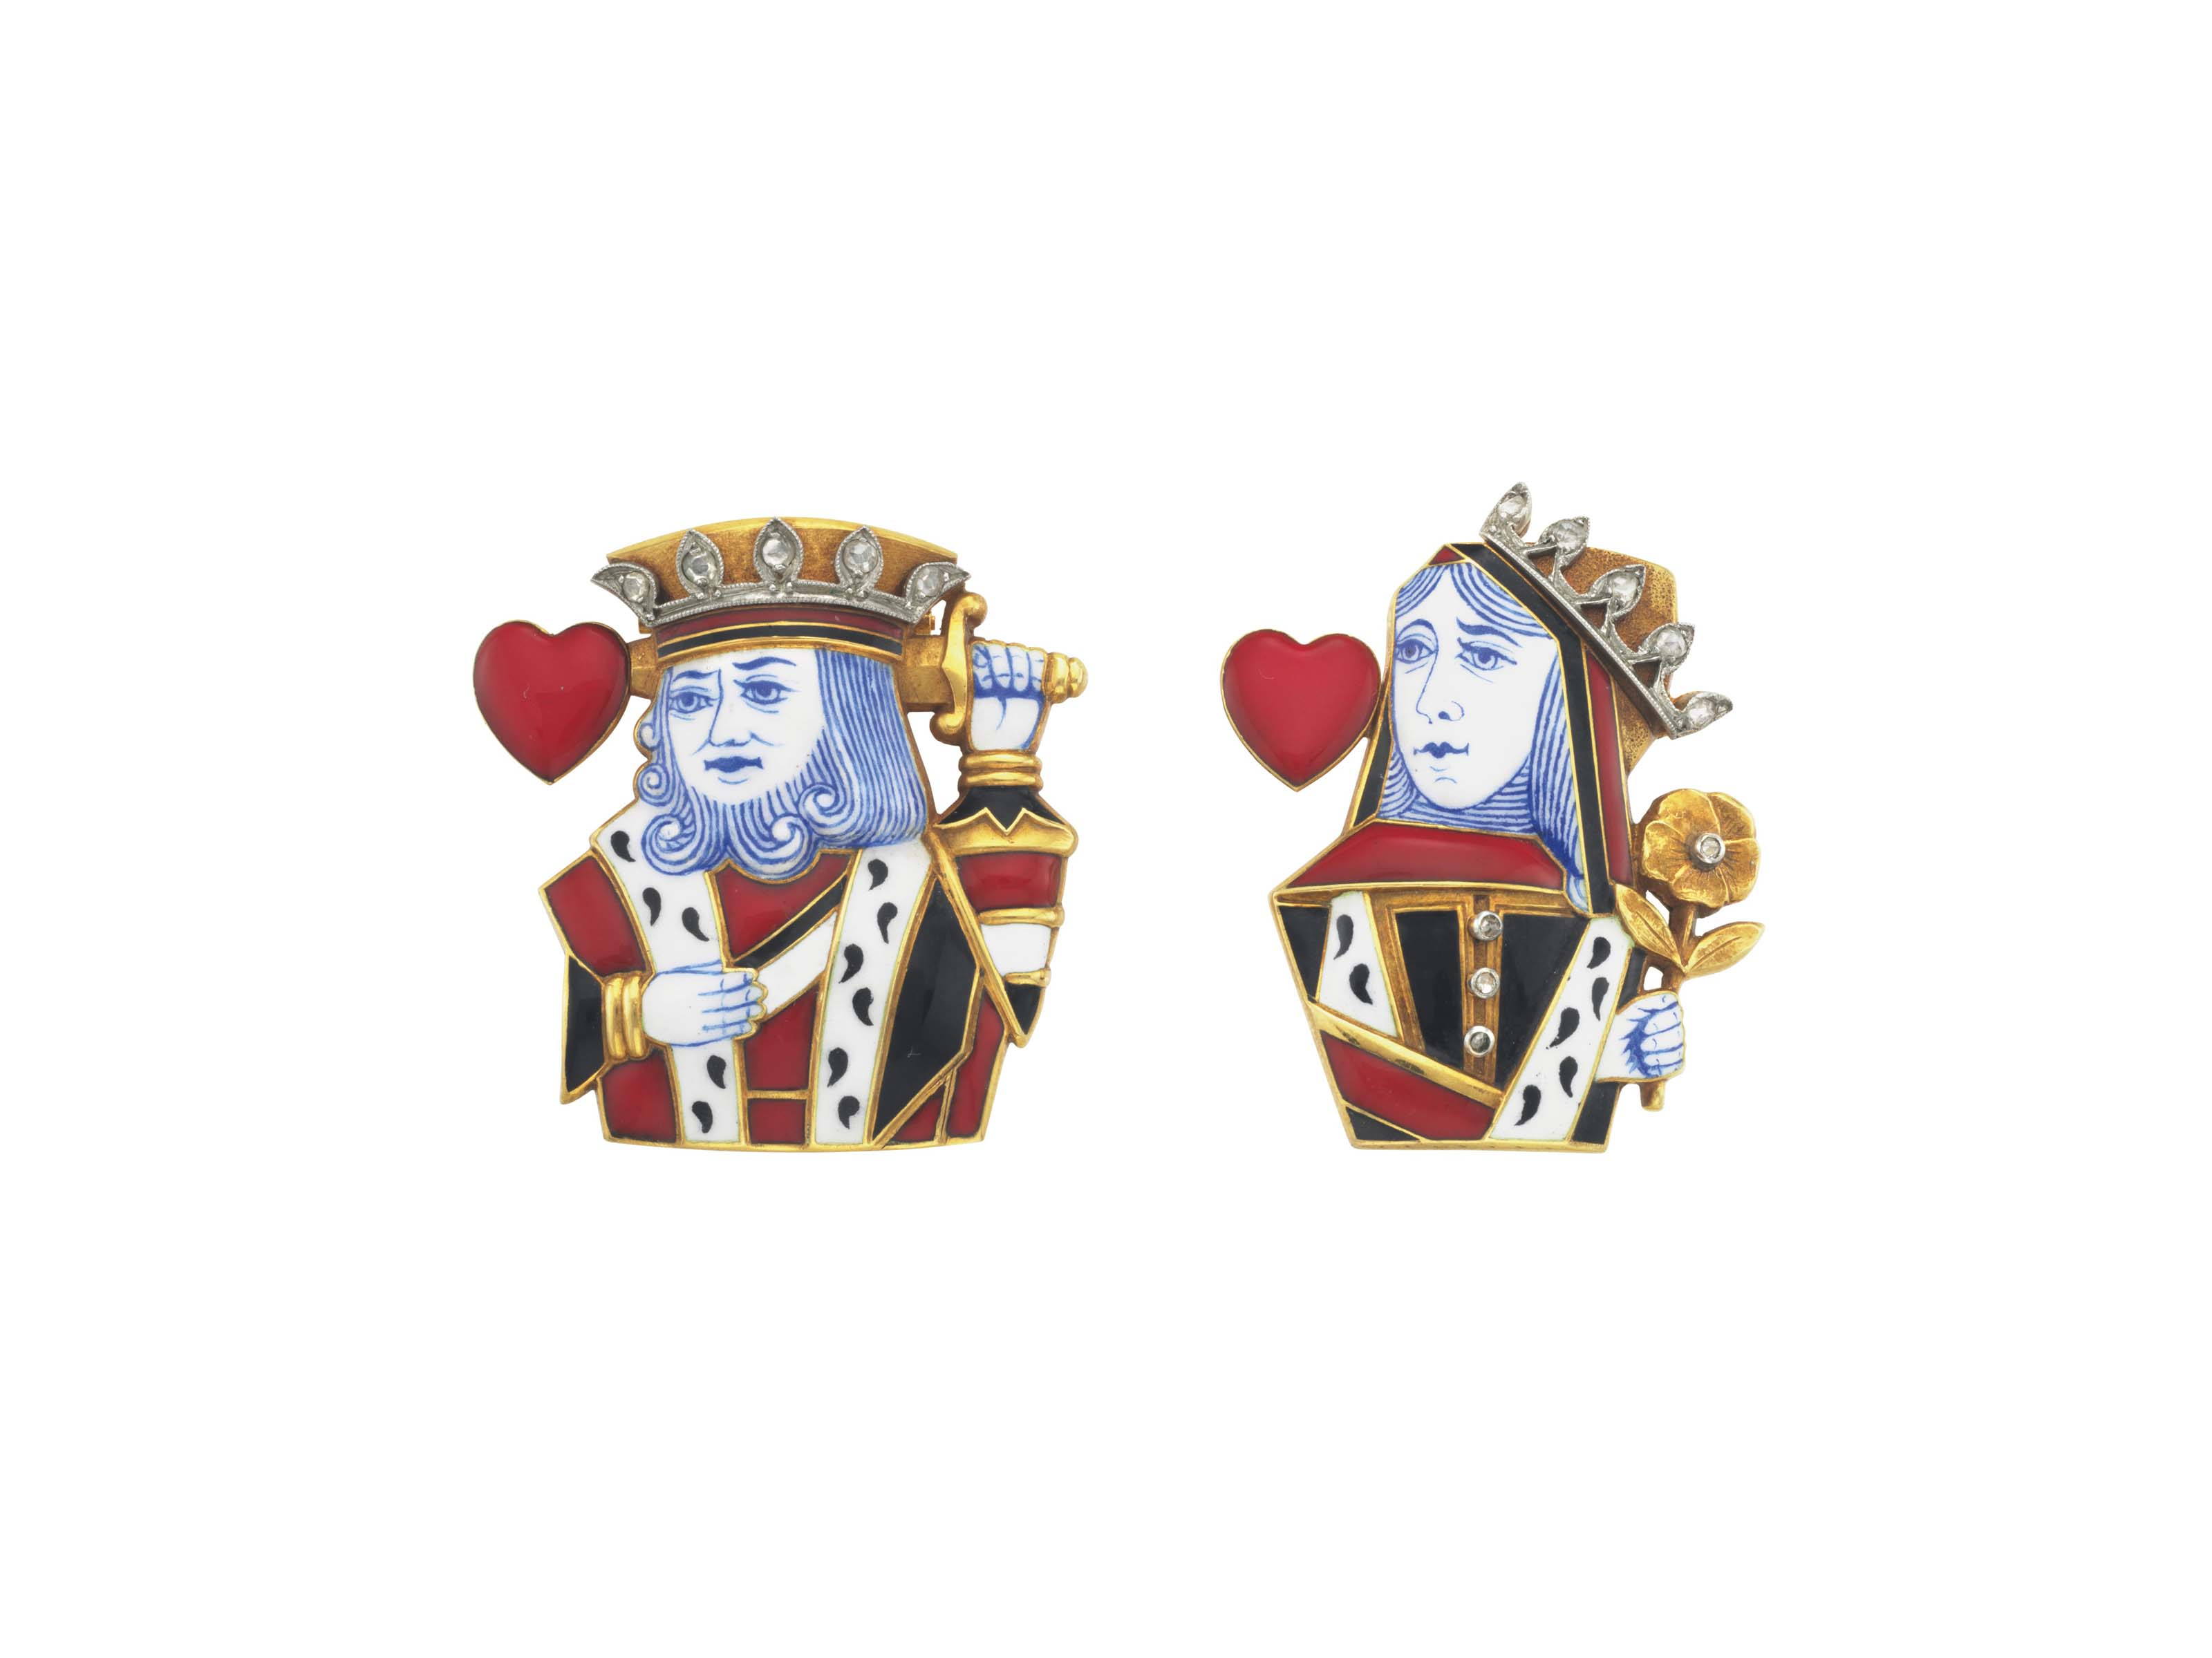 A PAIR OF ART DECO DIAMOND AND ENAMEL 'KING OF HEARTS' AND